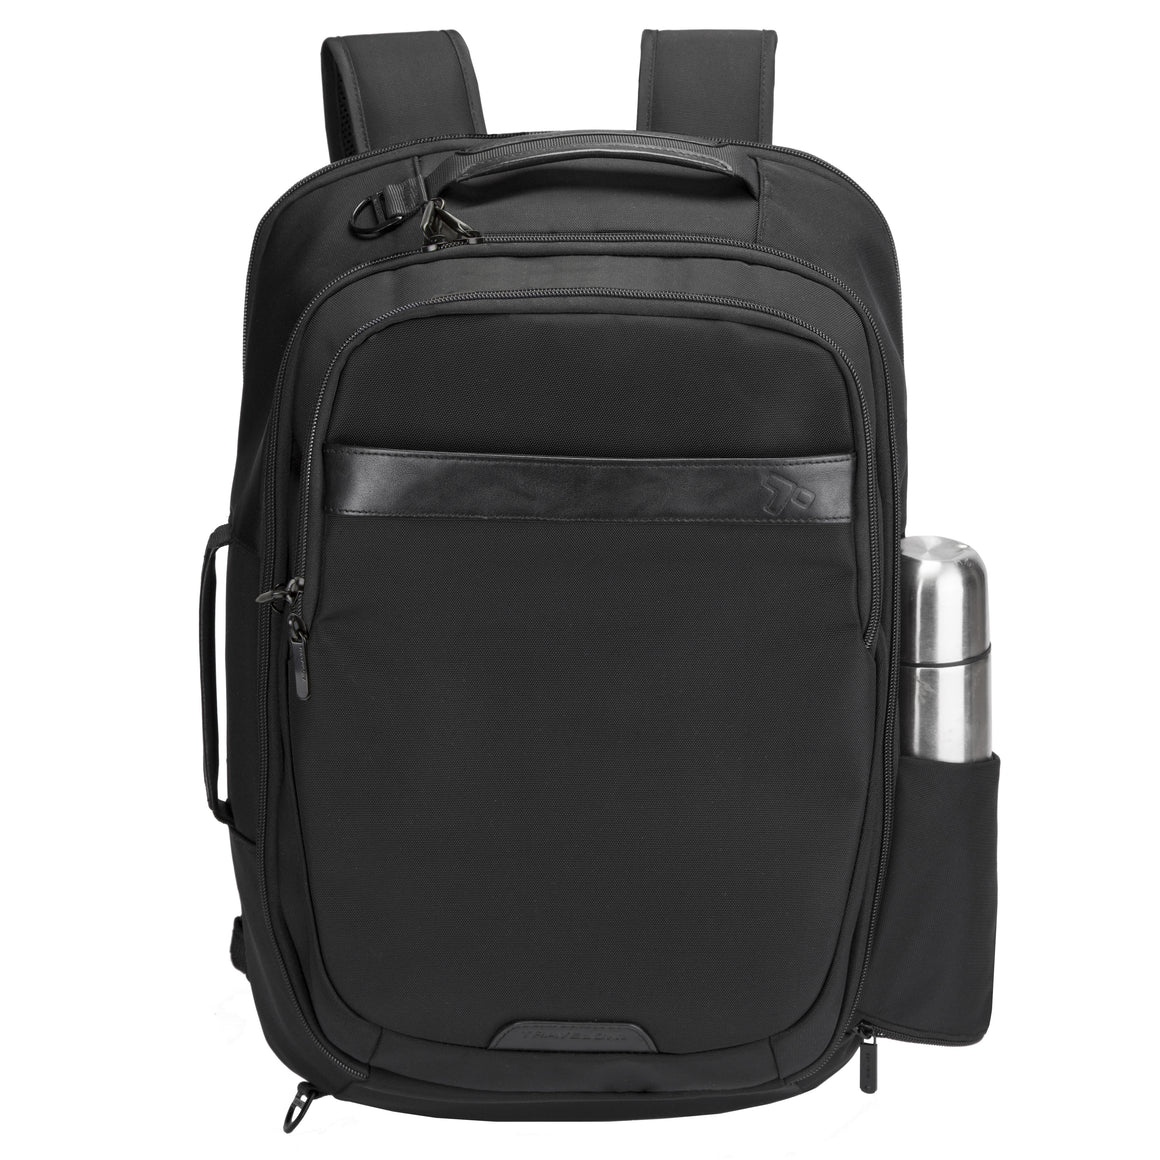 Travelon Anti-Theft Classic Plus Convertible Weekender Laptop Backpack Black